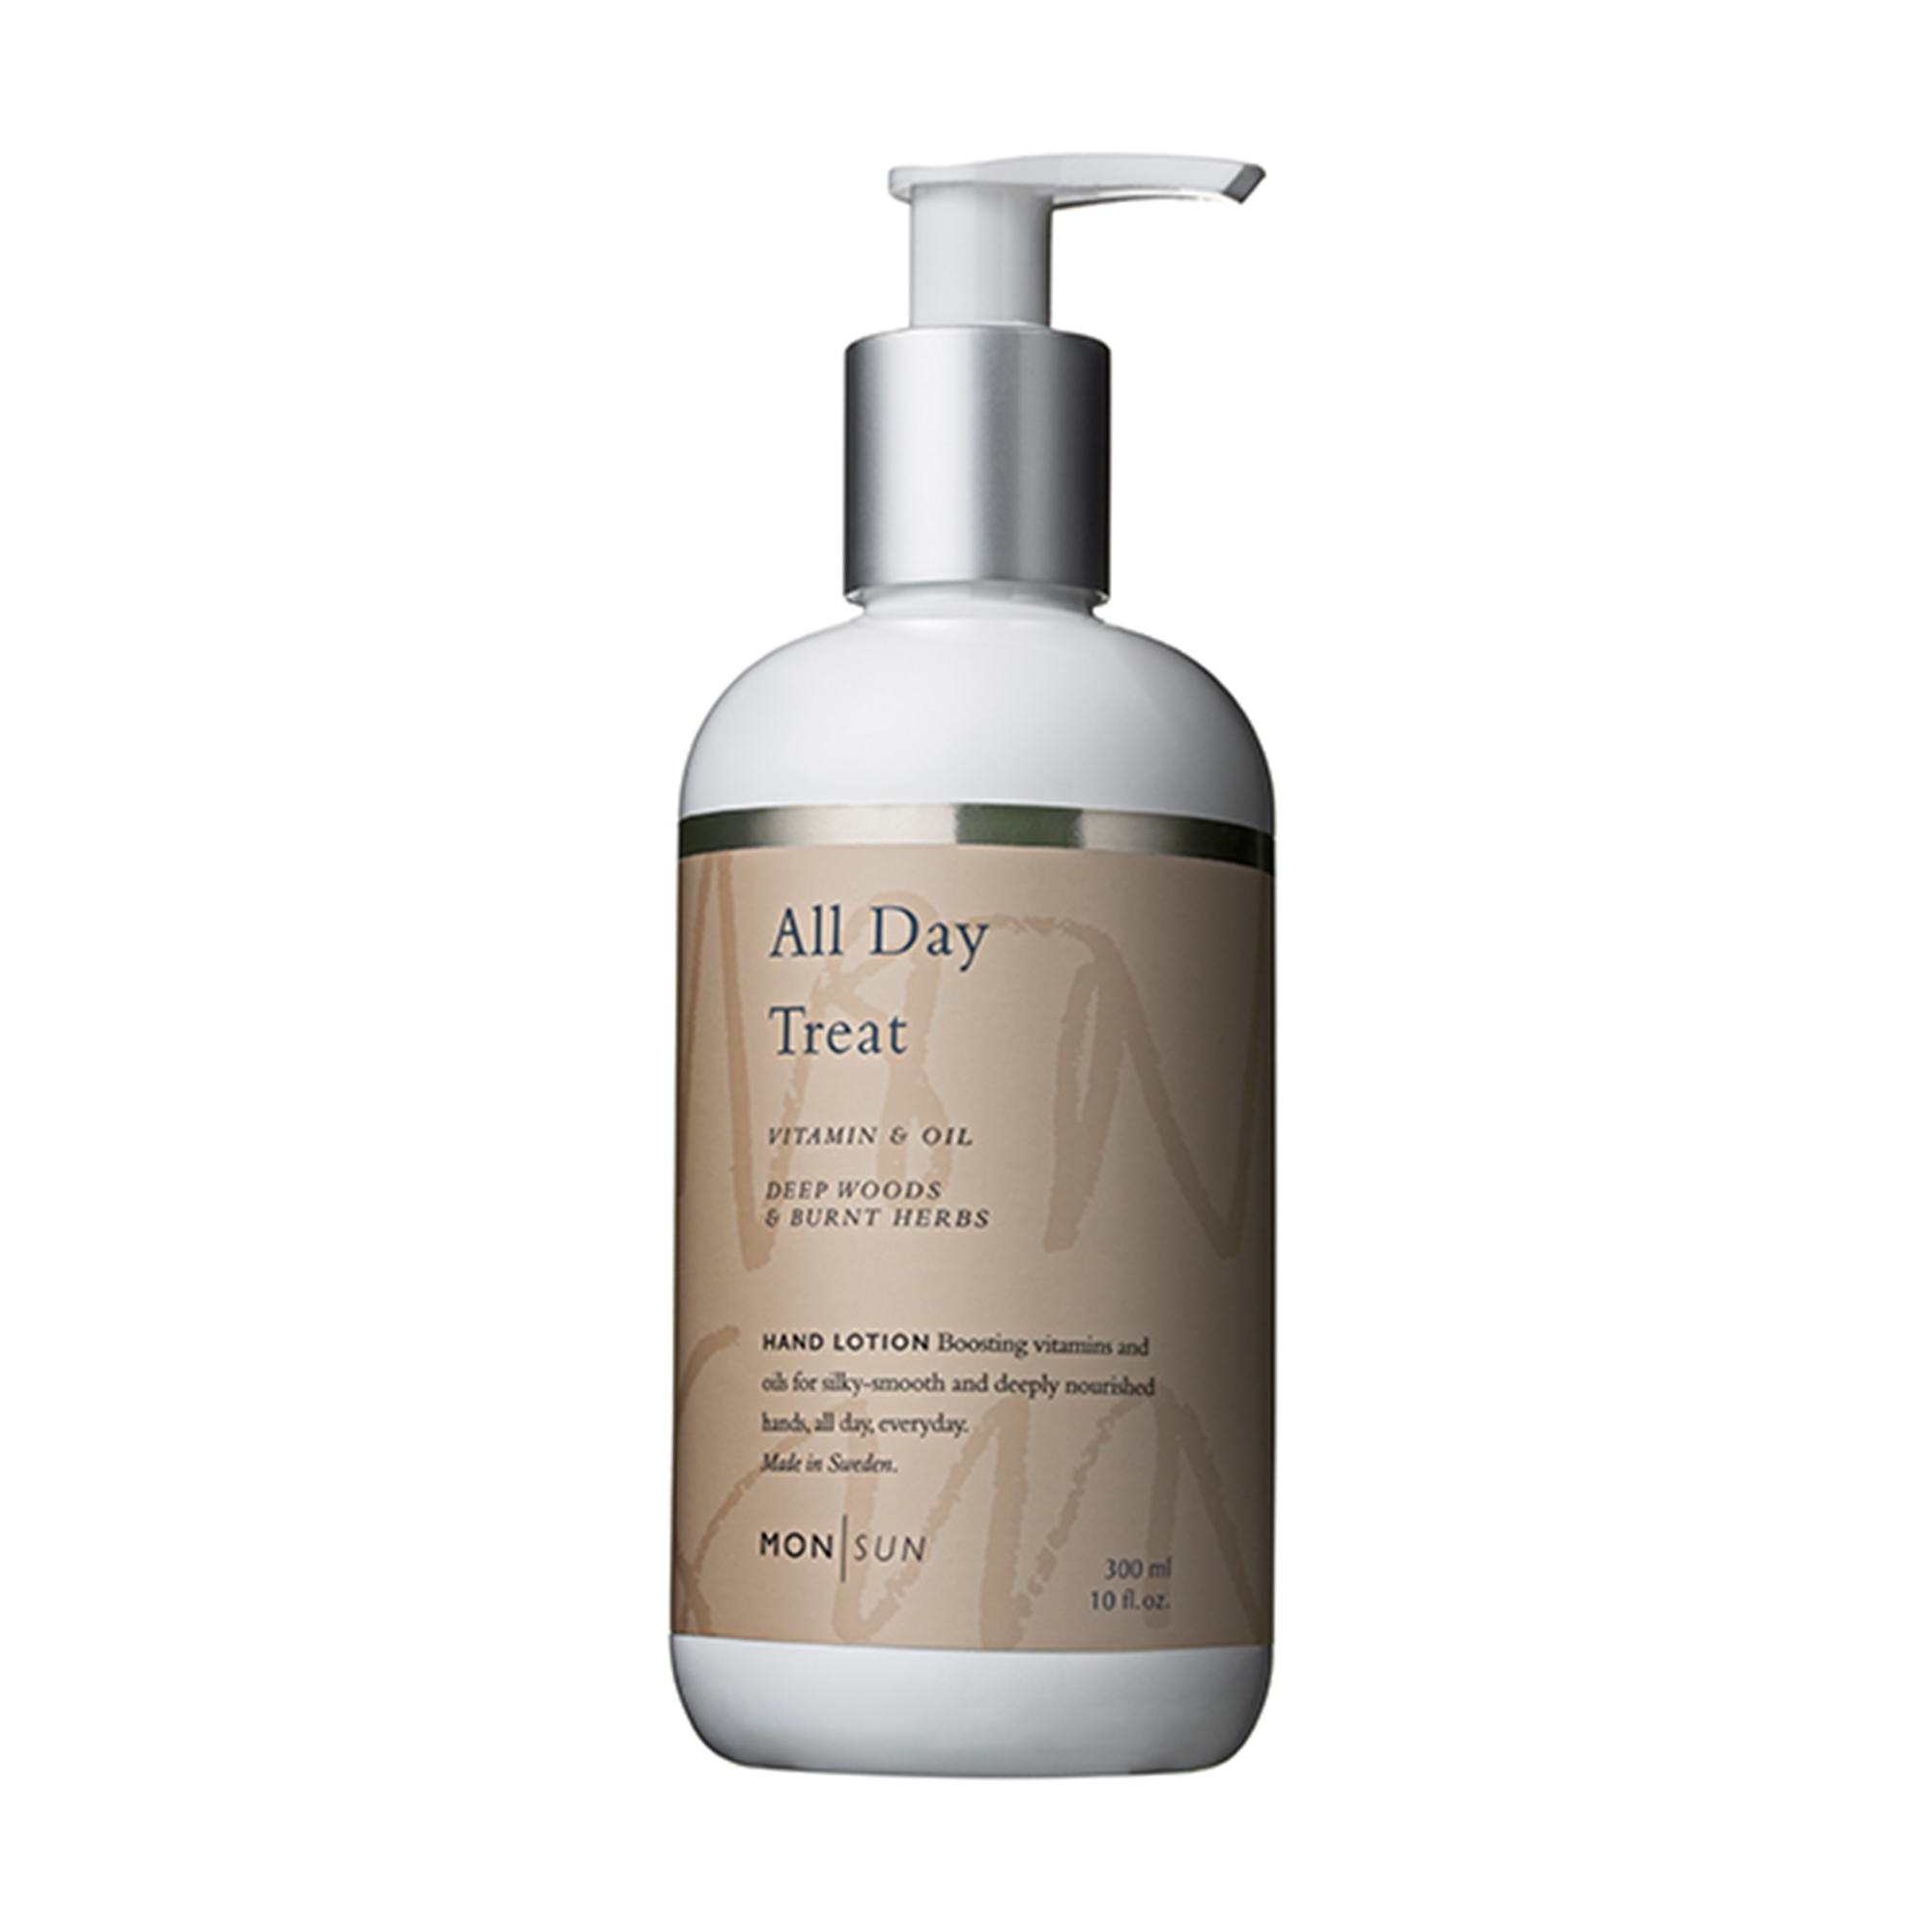 All Day Treat Vitamin & Oil Hand Lotion 300ml